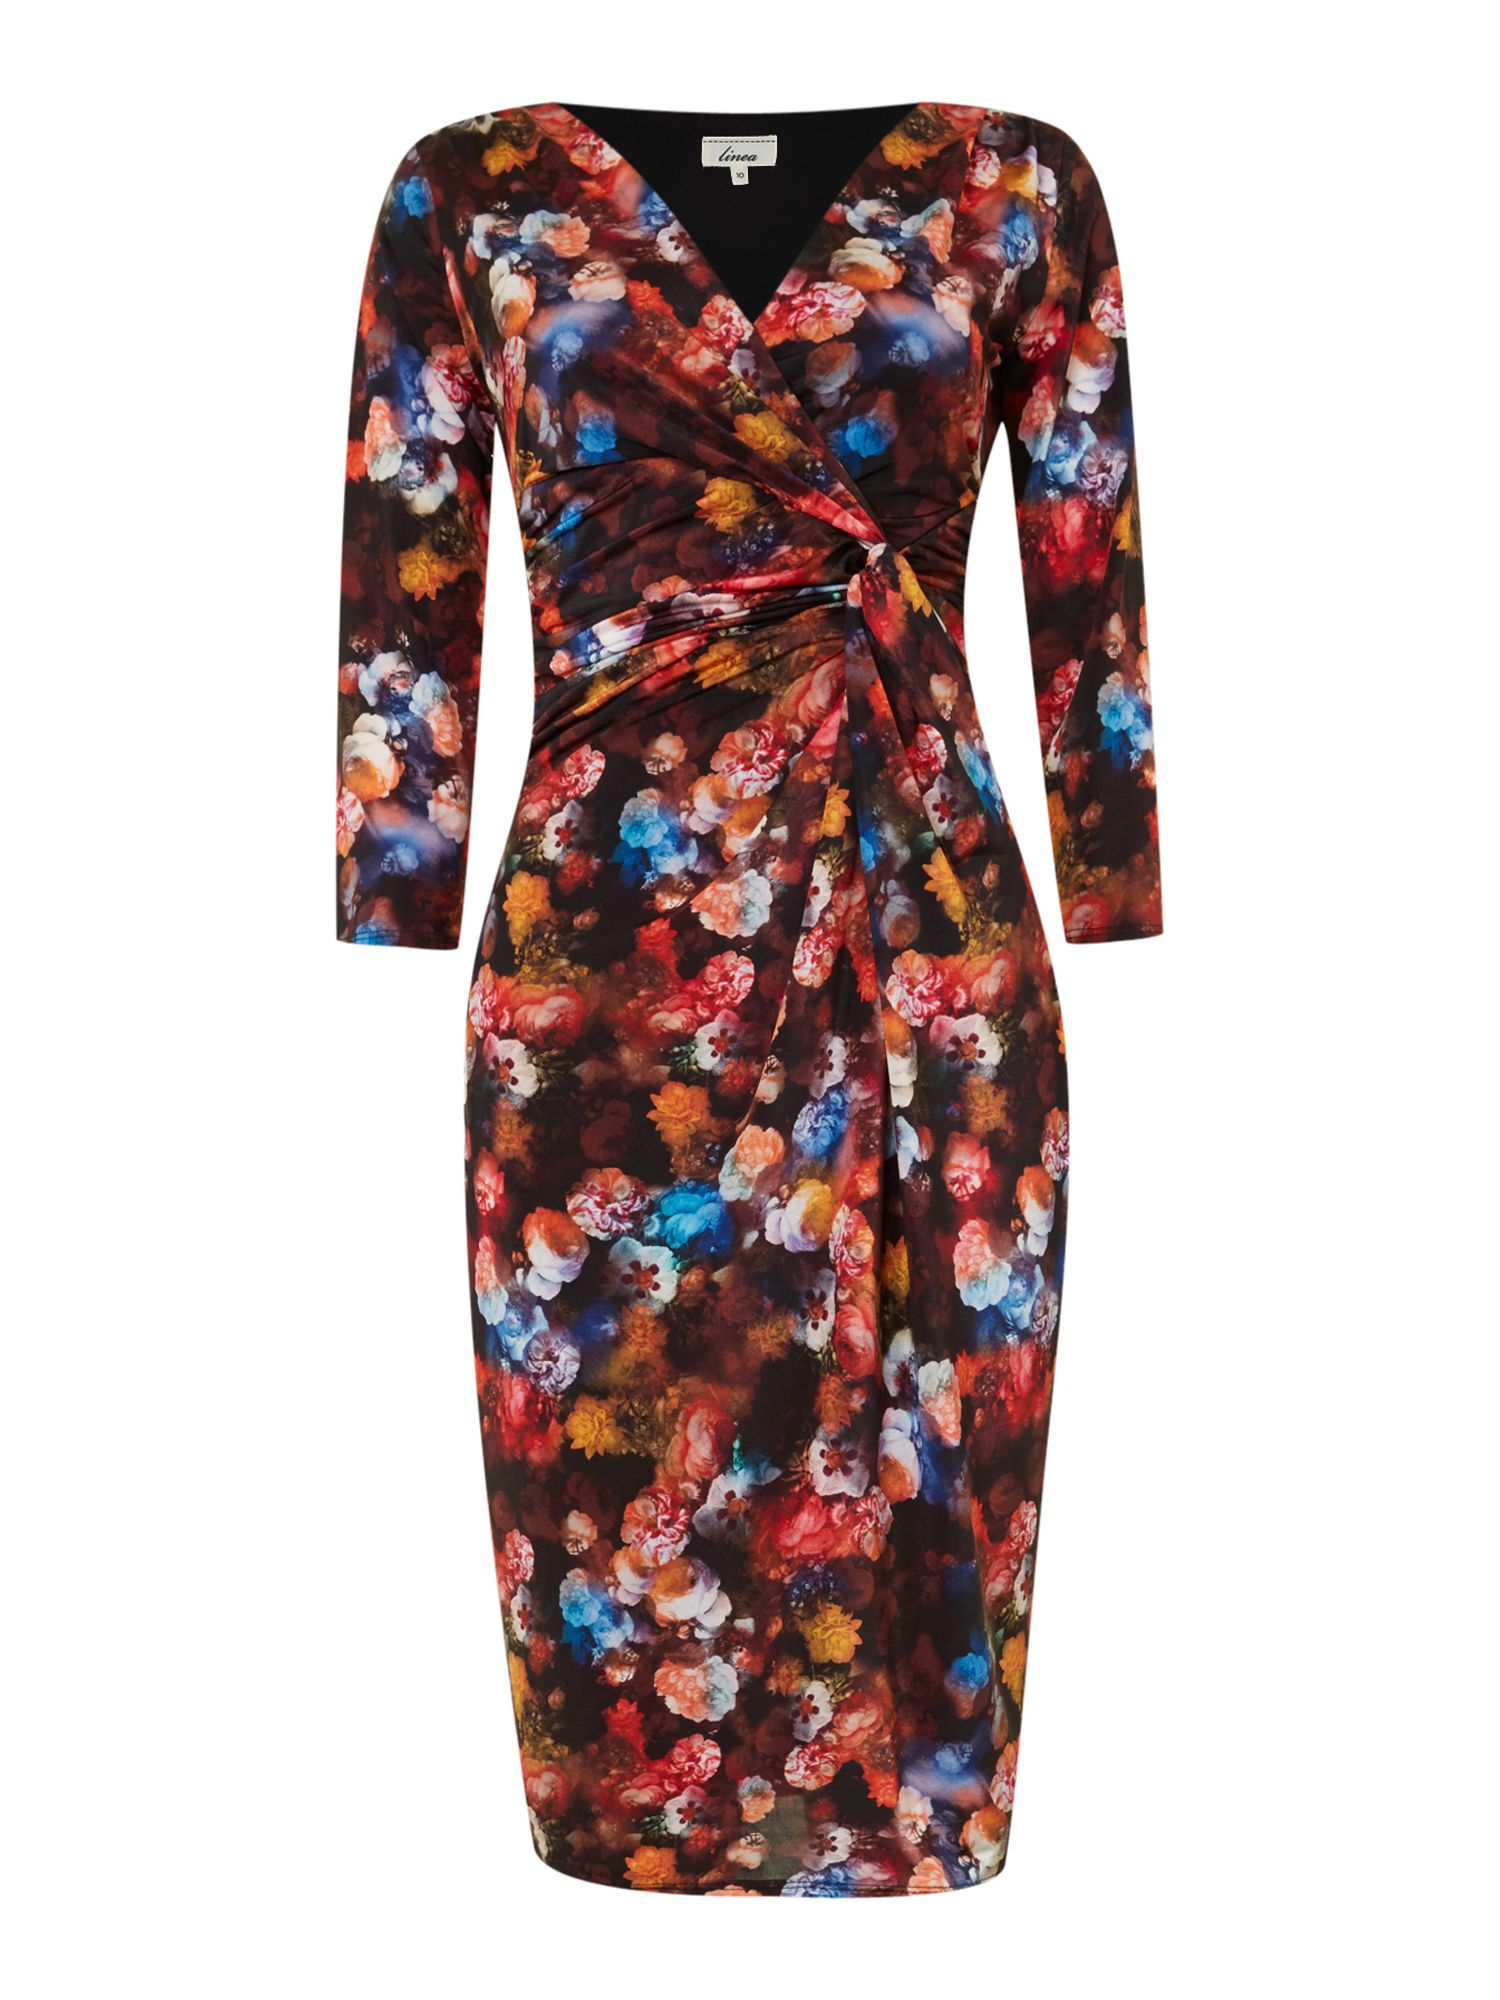 Sally floral ruch side jersey dress